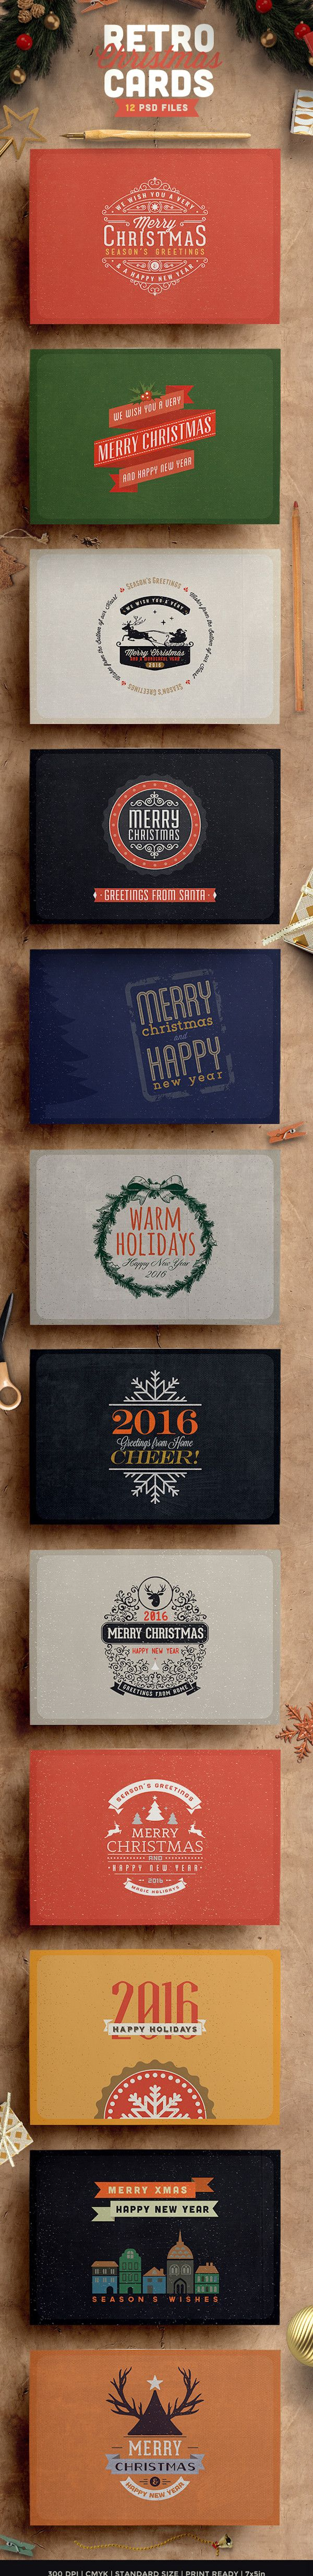 20+ Creative Christmas Card Designs for Inspiration